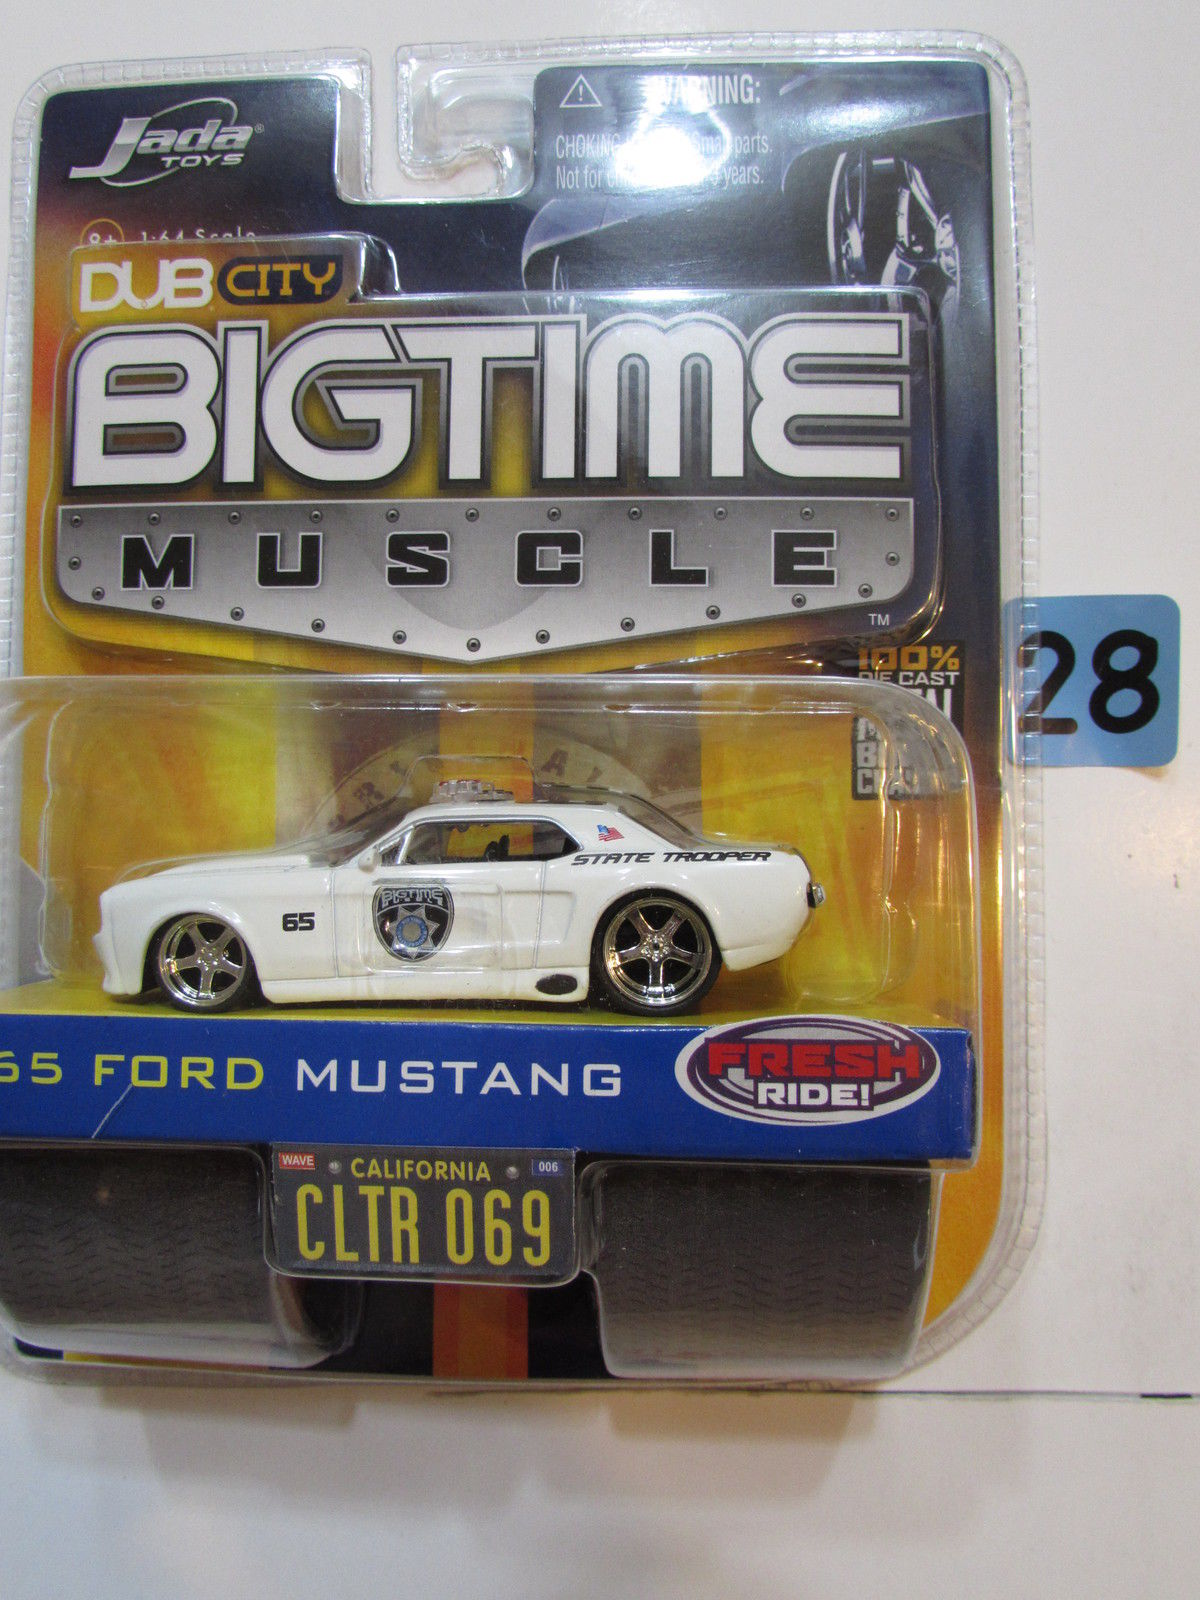 JADA DUB CITY BIG TIME MUSCLE - '65 FORD MUSTANG CLTR 069